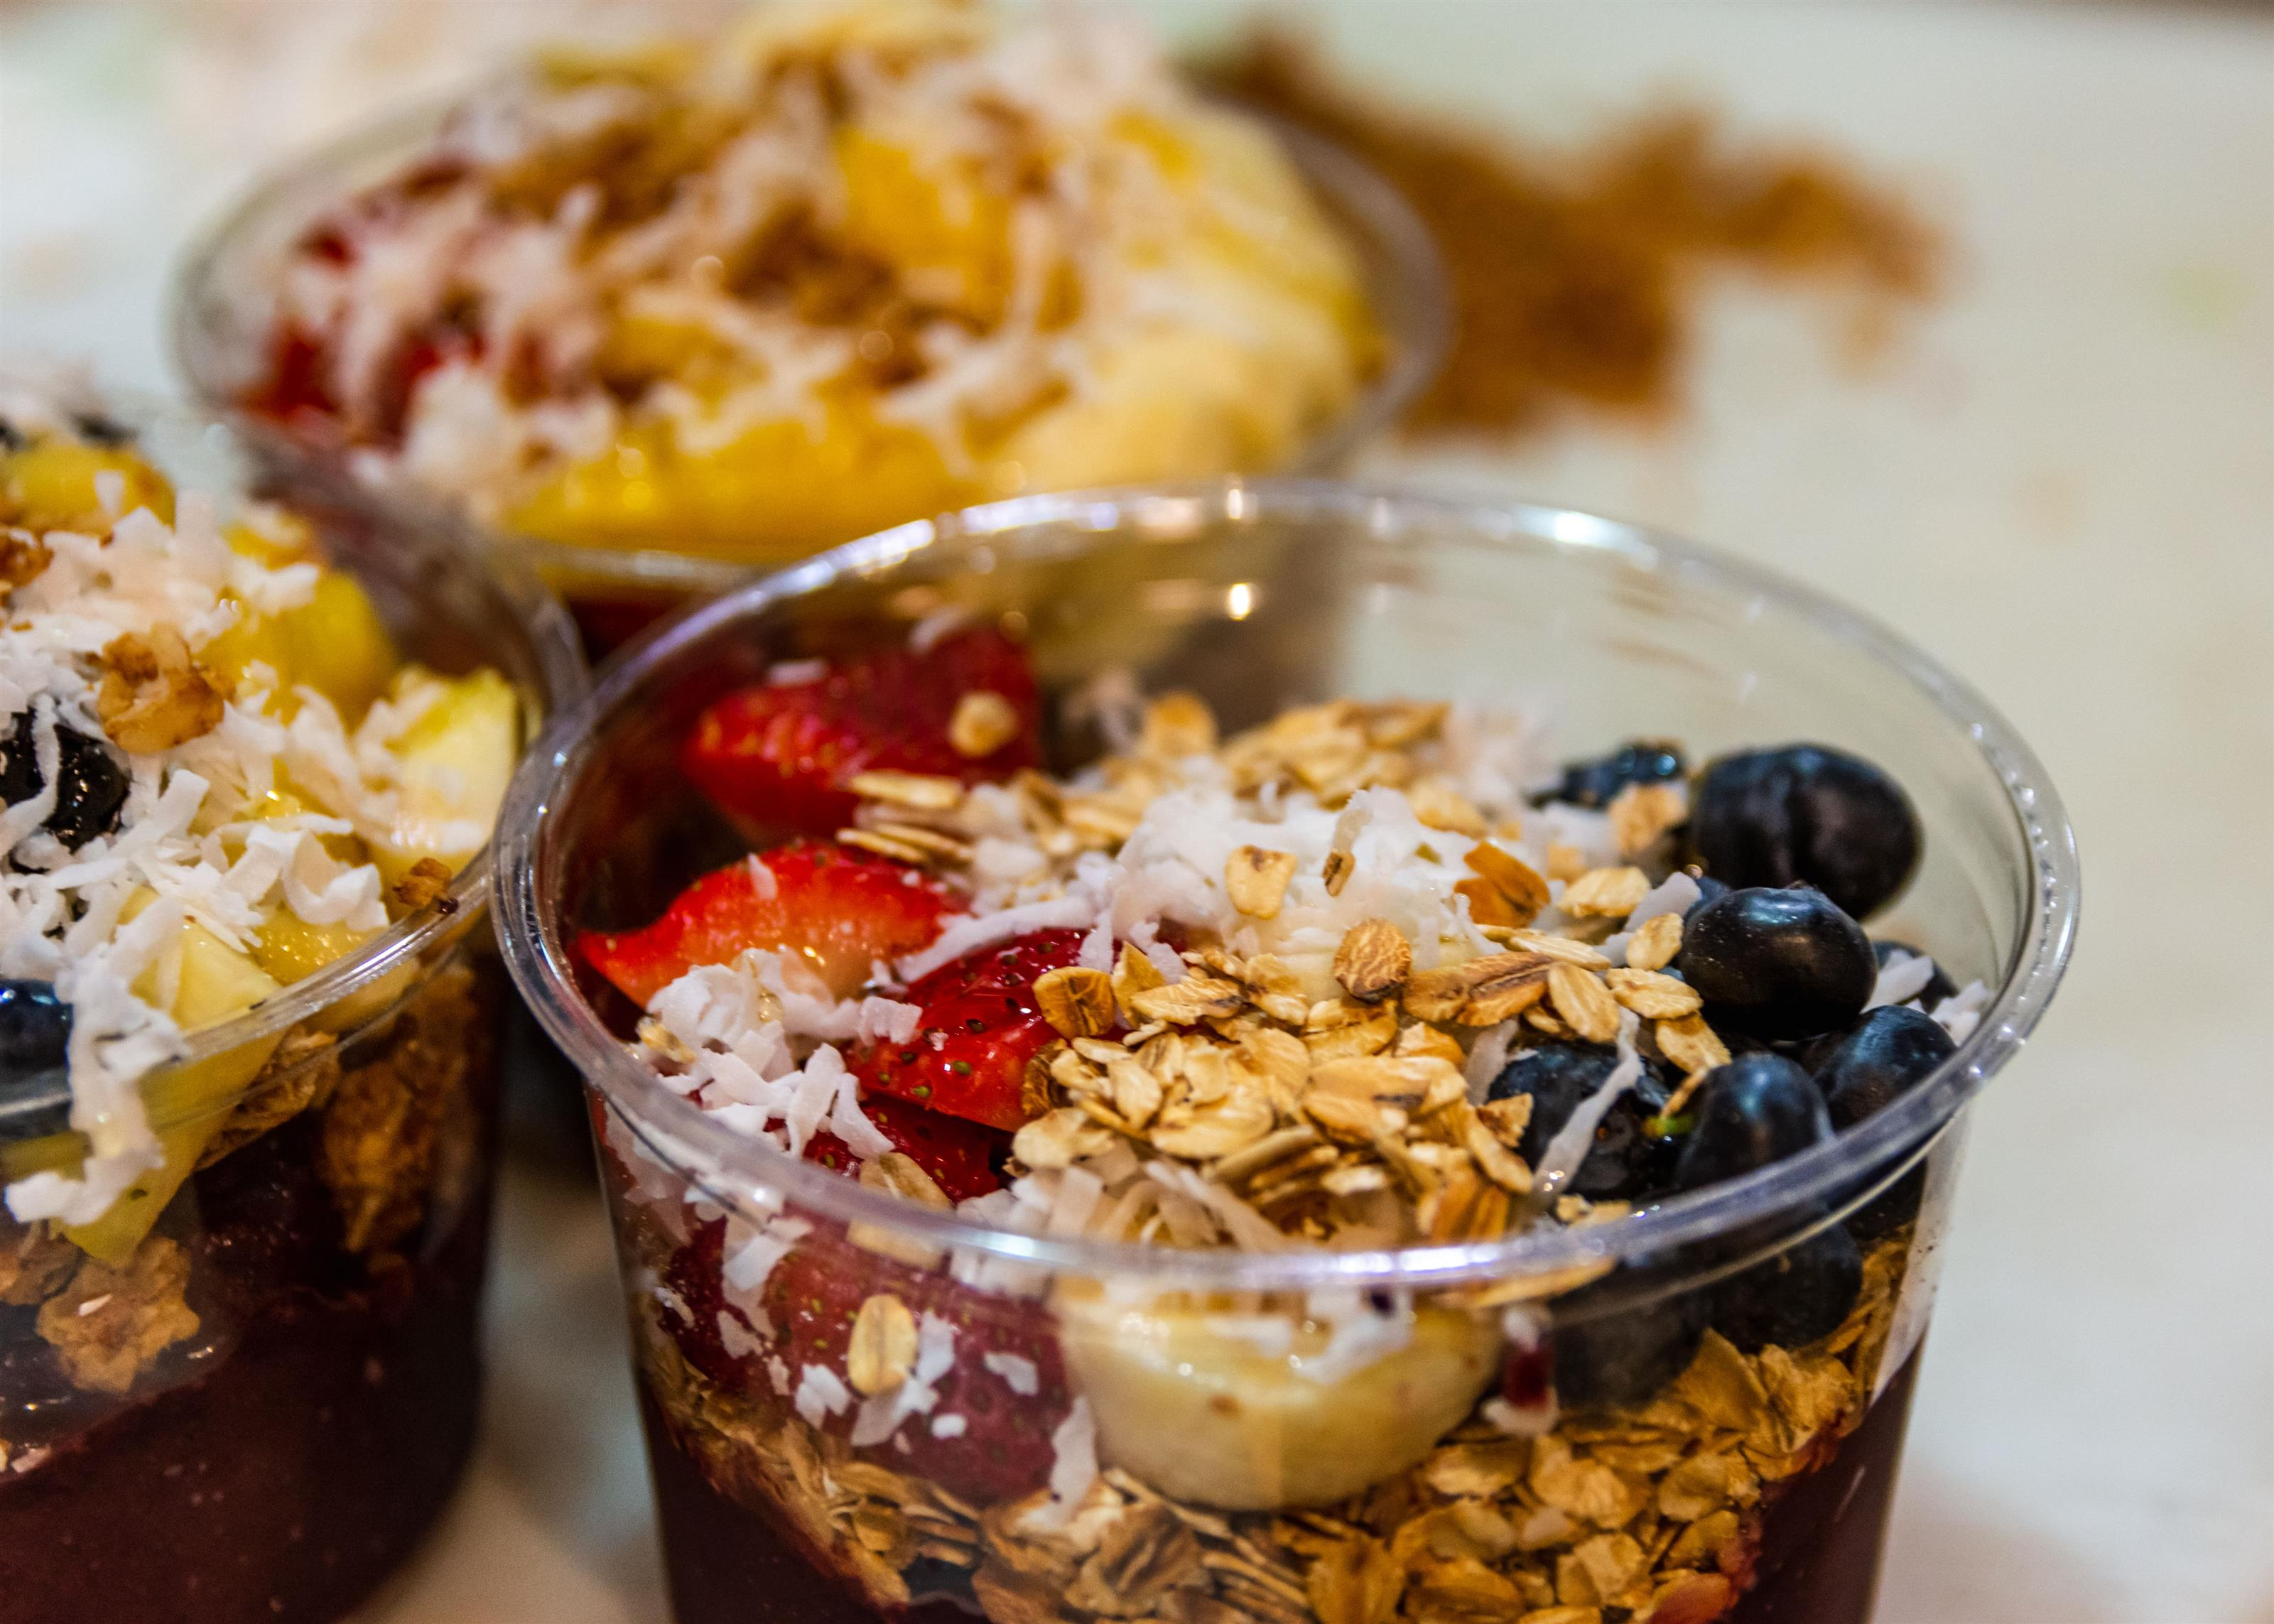 various fruit topped with granola in a cup